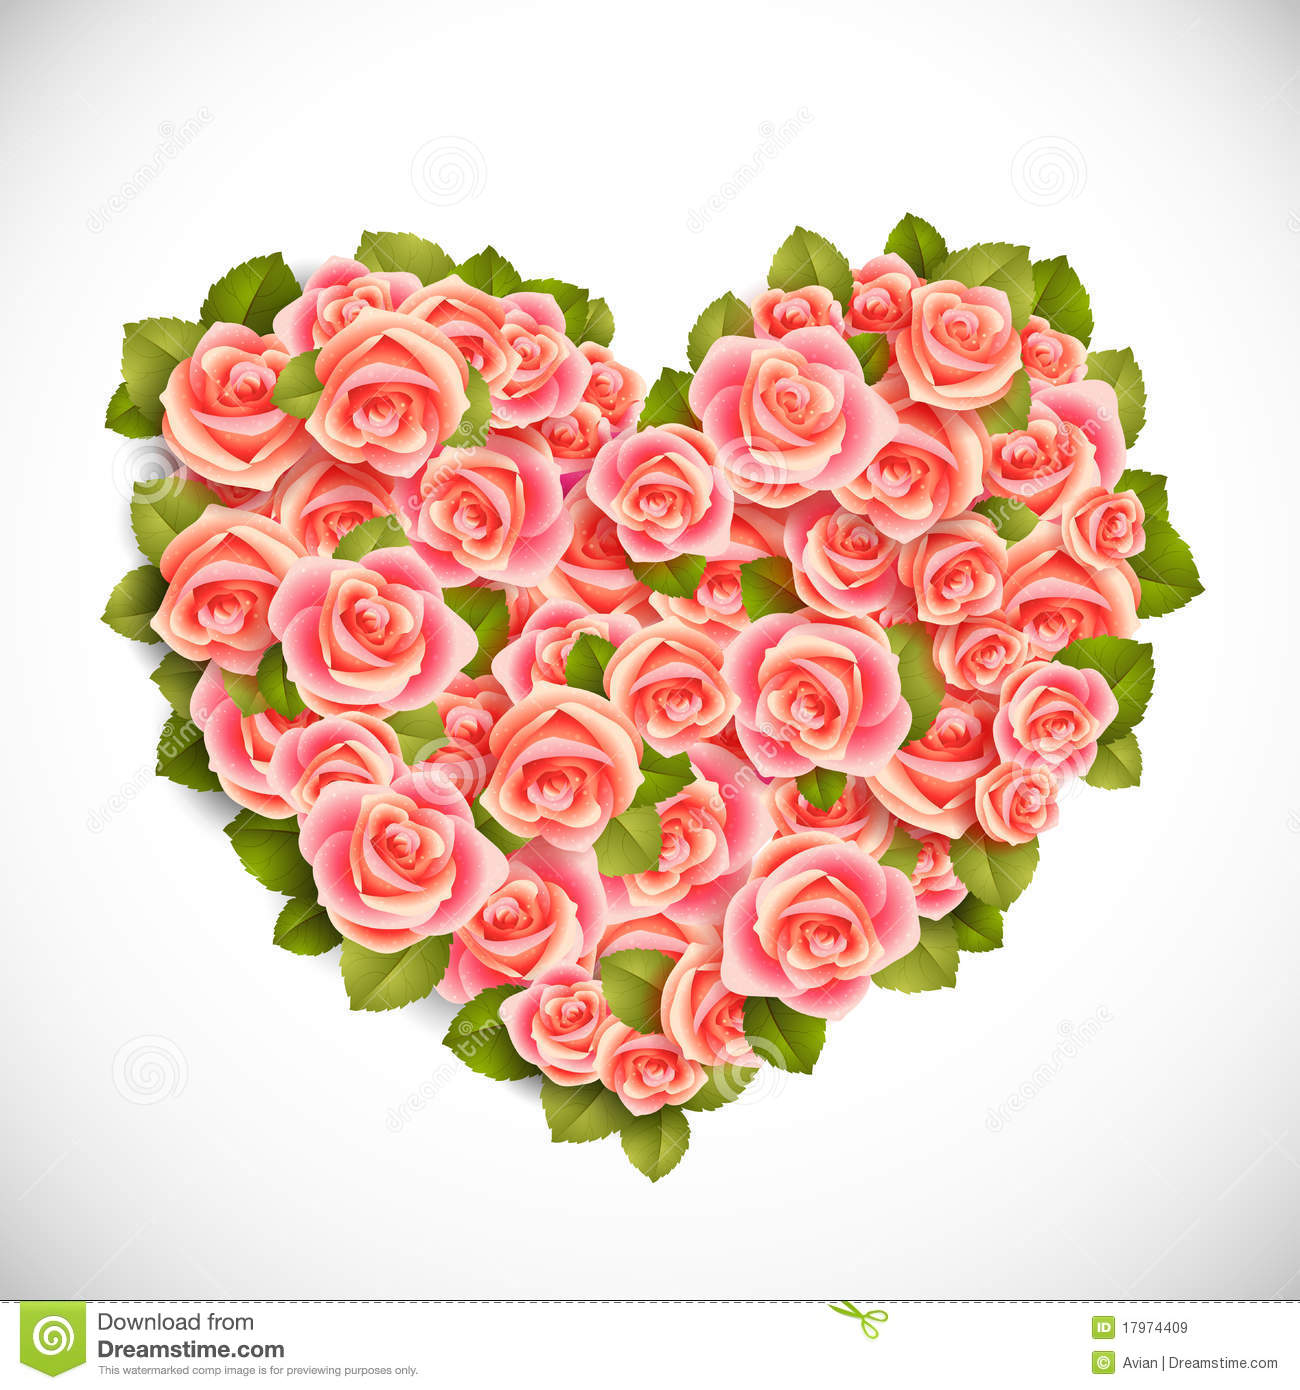 Heart Of Pink Roses Royalty Free Stock Images - Image: 17974409 Pink Roses And Hearts